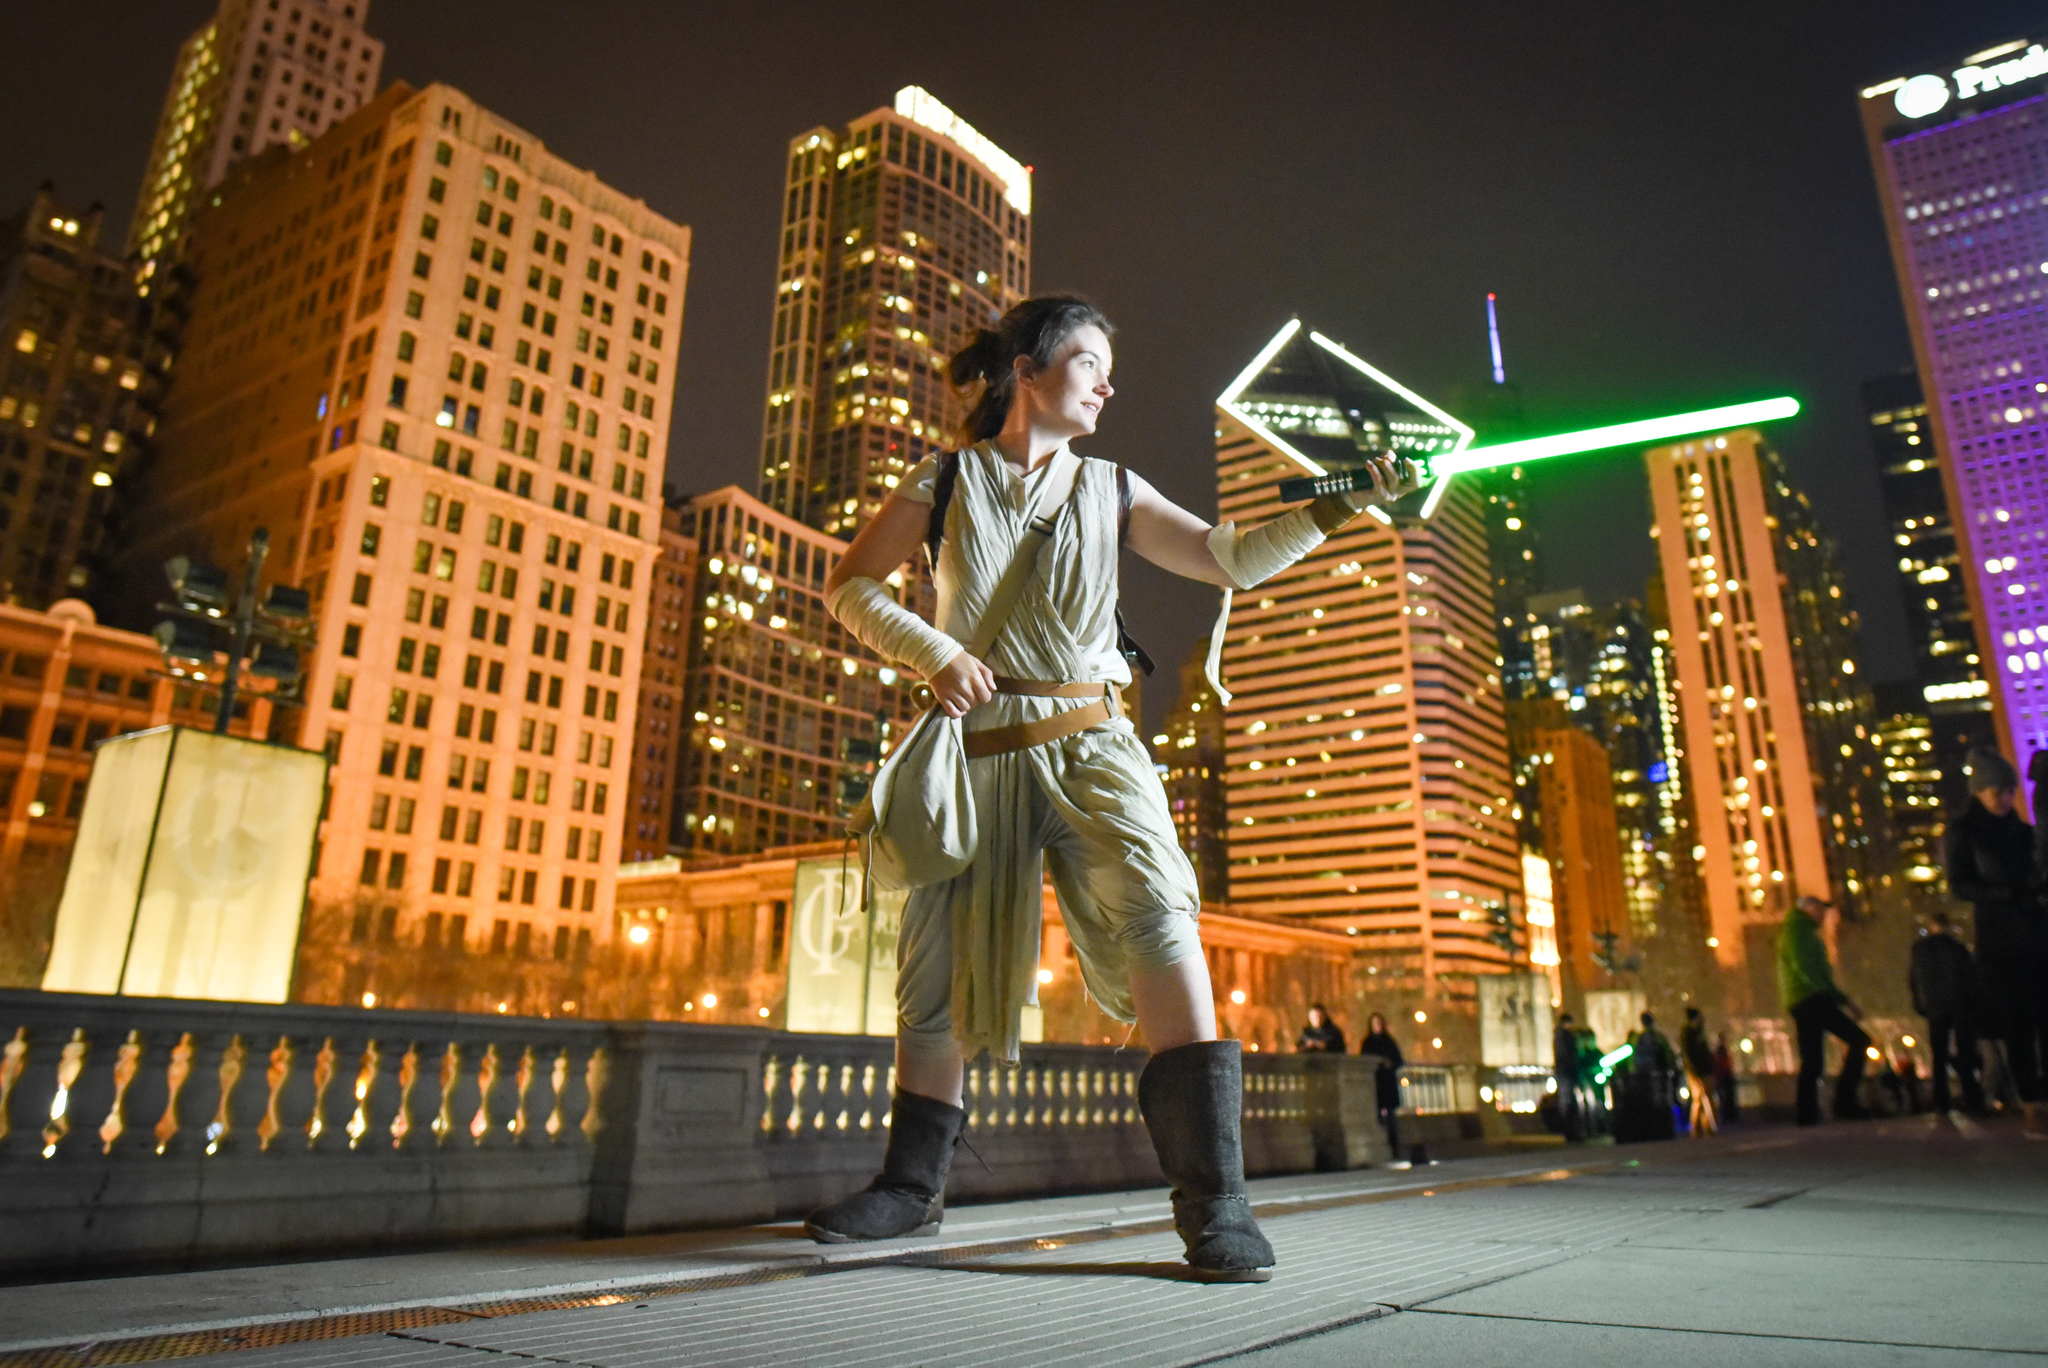 2019.04.14 - Star Wars Celebration Chicago 288891.JPG